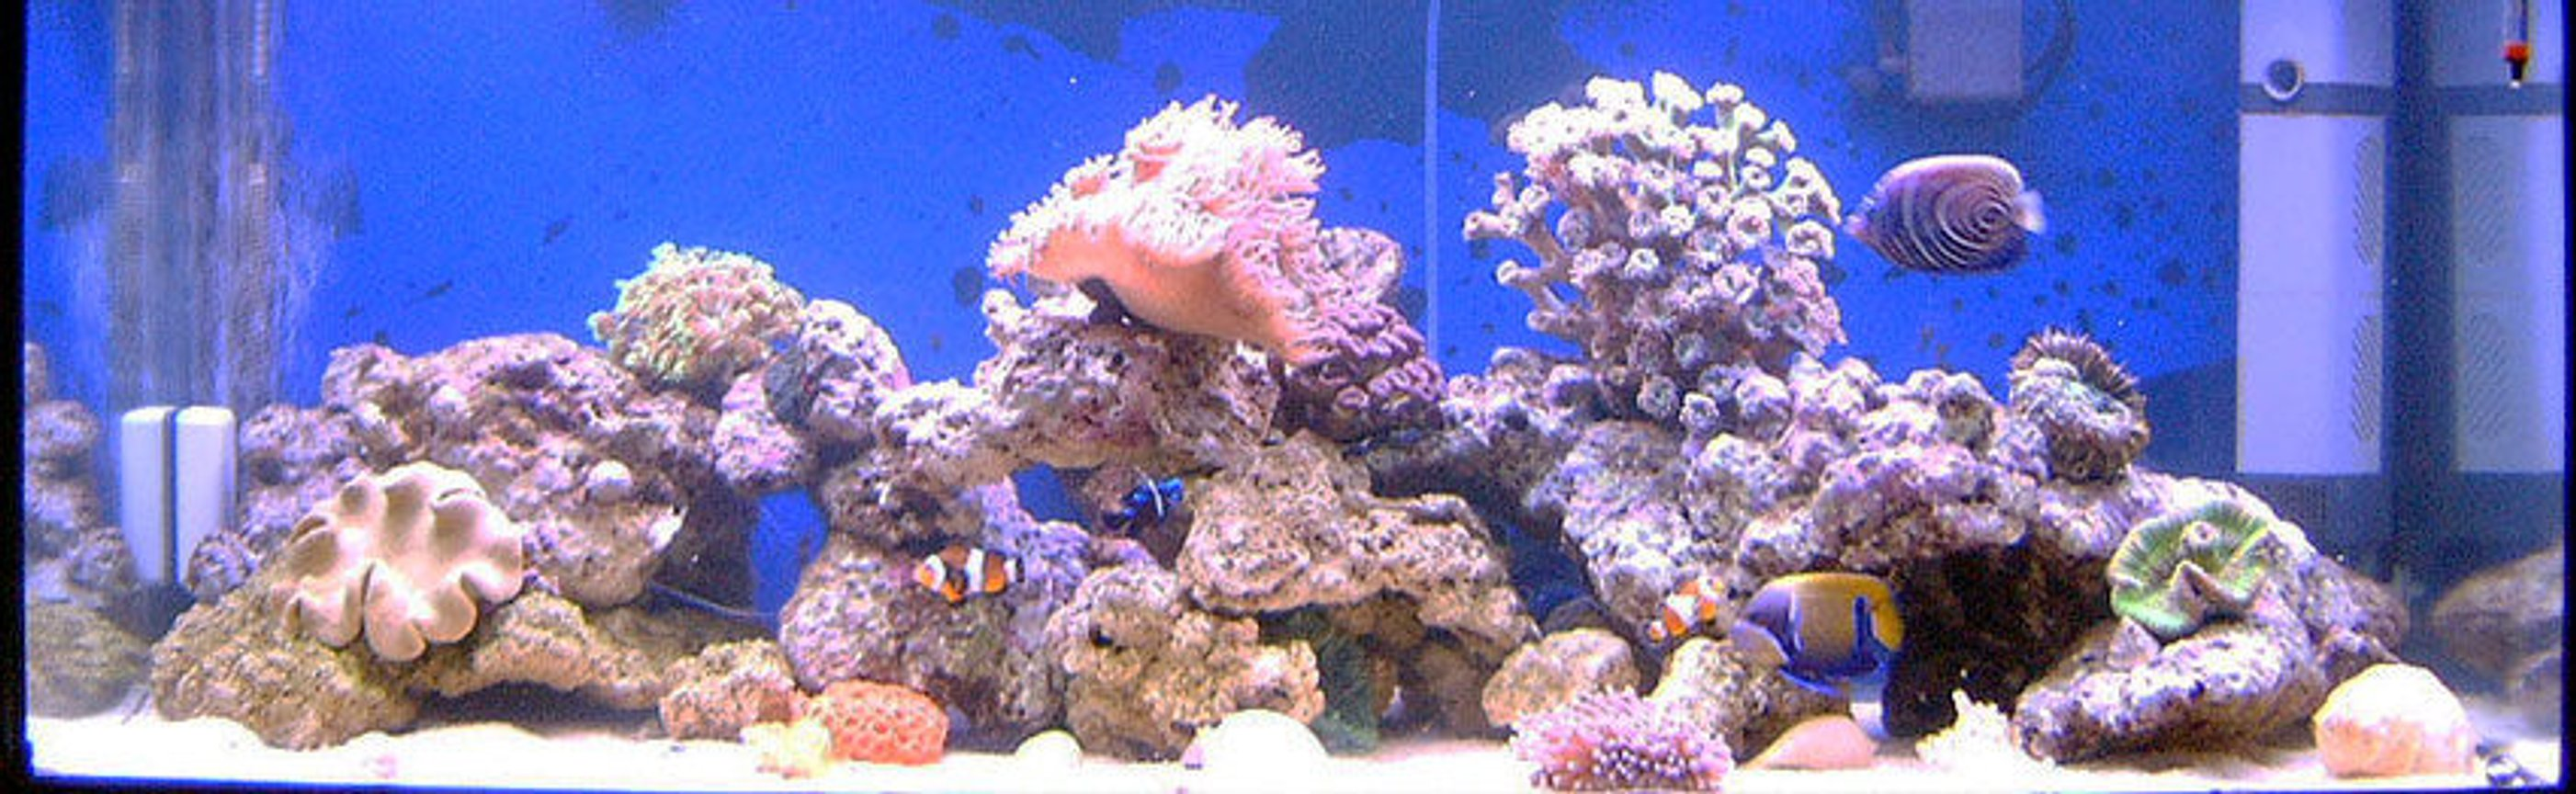 75 gallons reef tank (mostly live coral and fish) - 22 weeks old